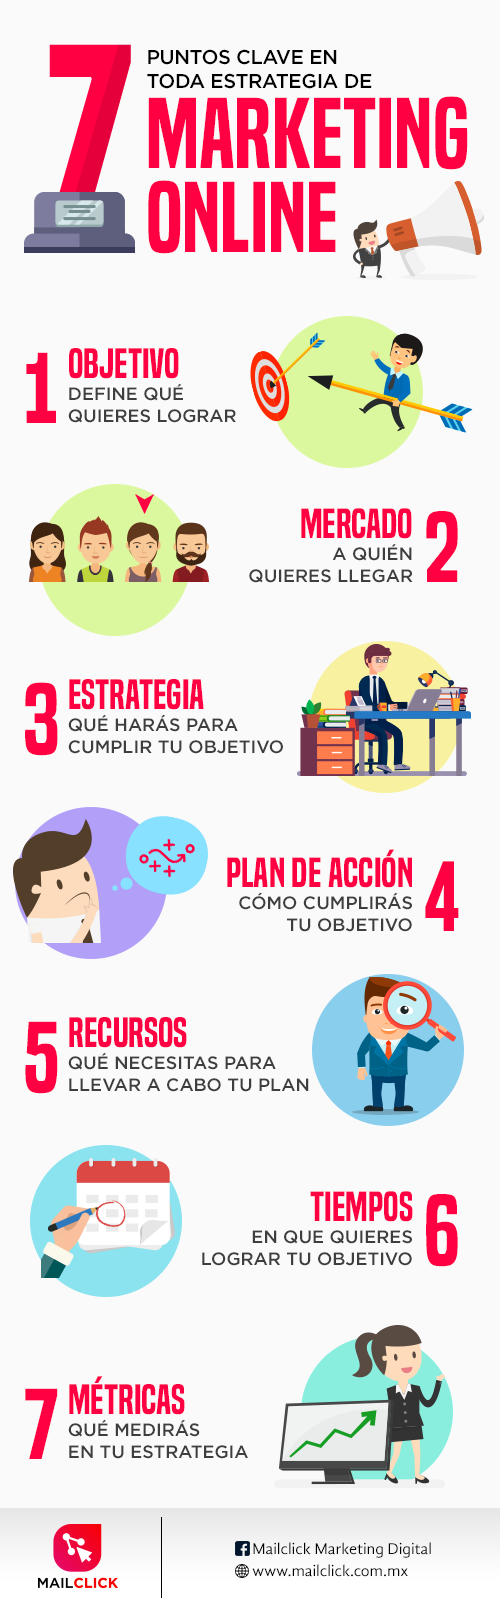 Infografía de los pasos clave en toda estrategia de marketing digital